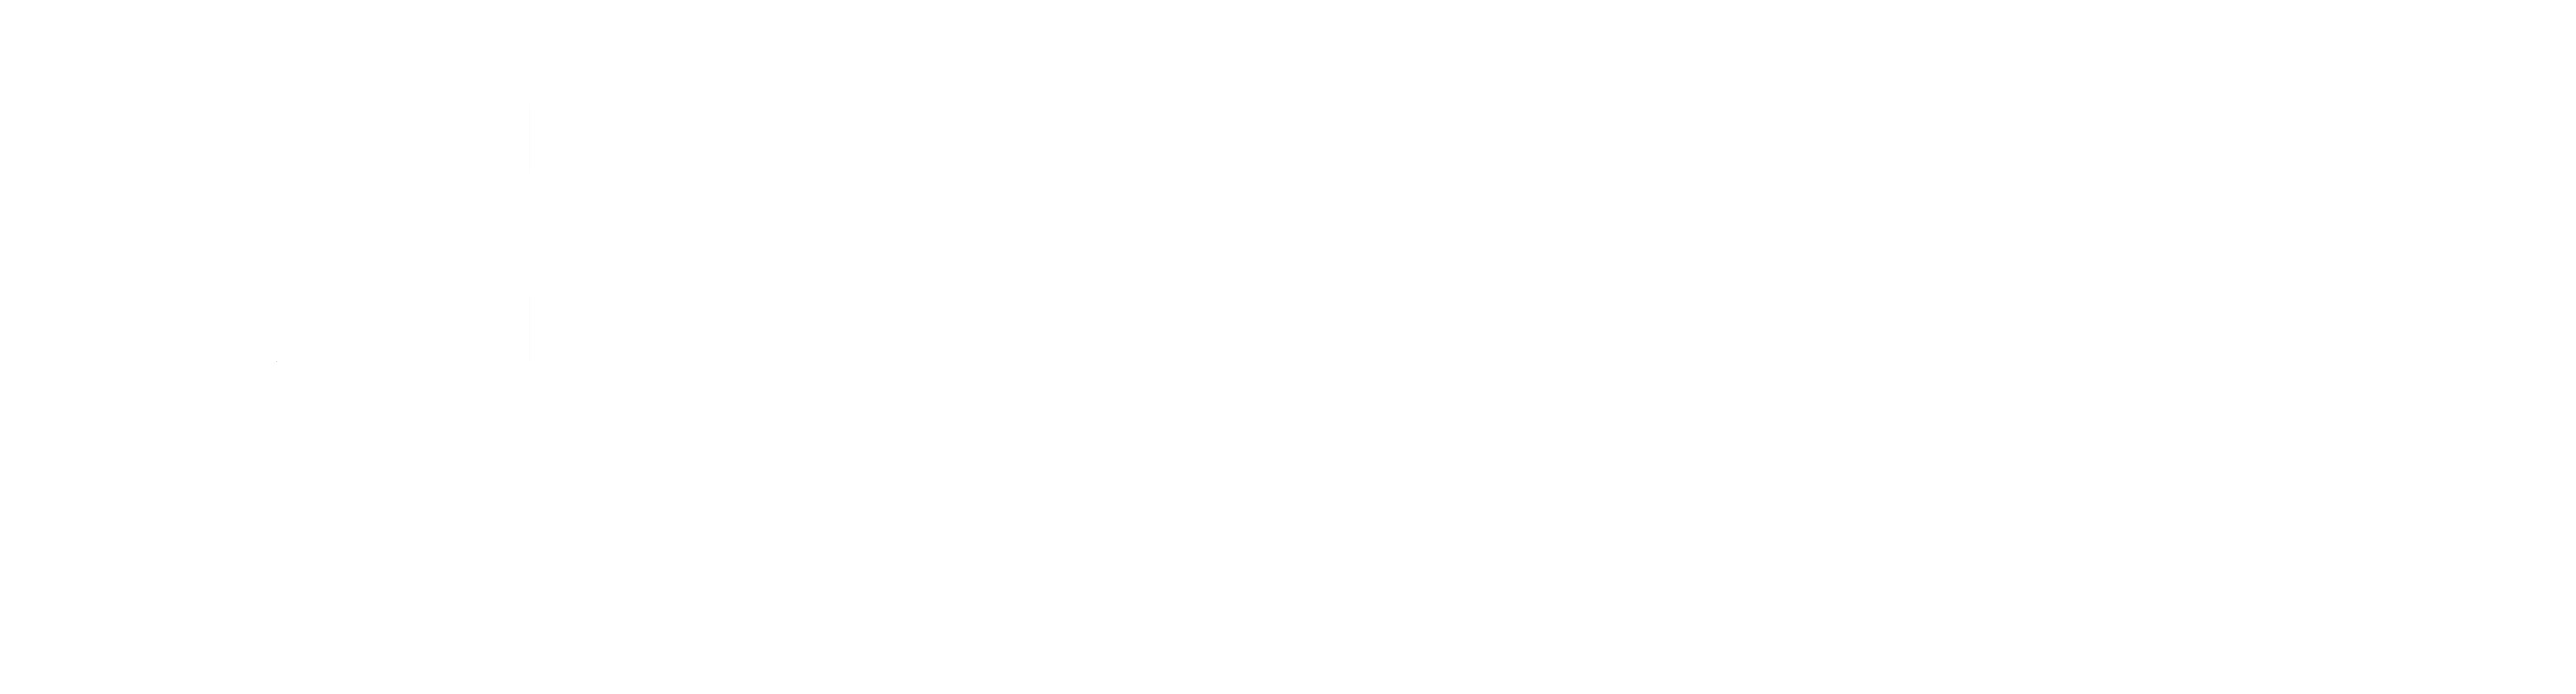 Crush Marketing